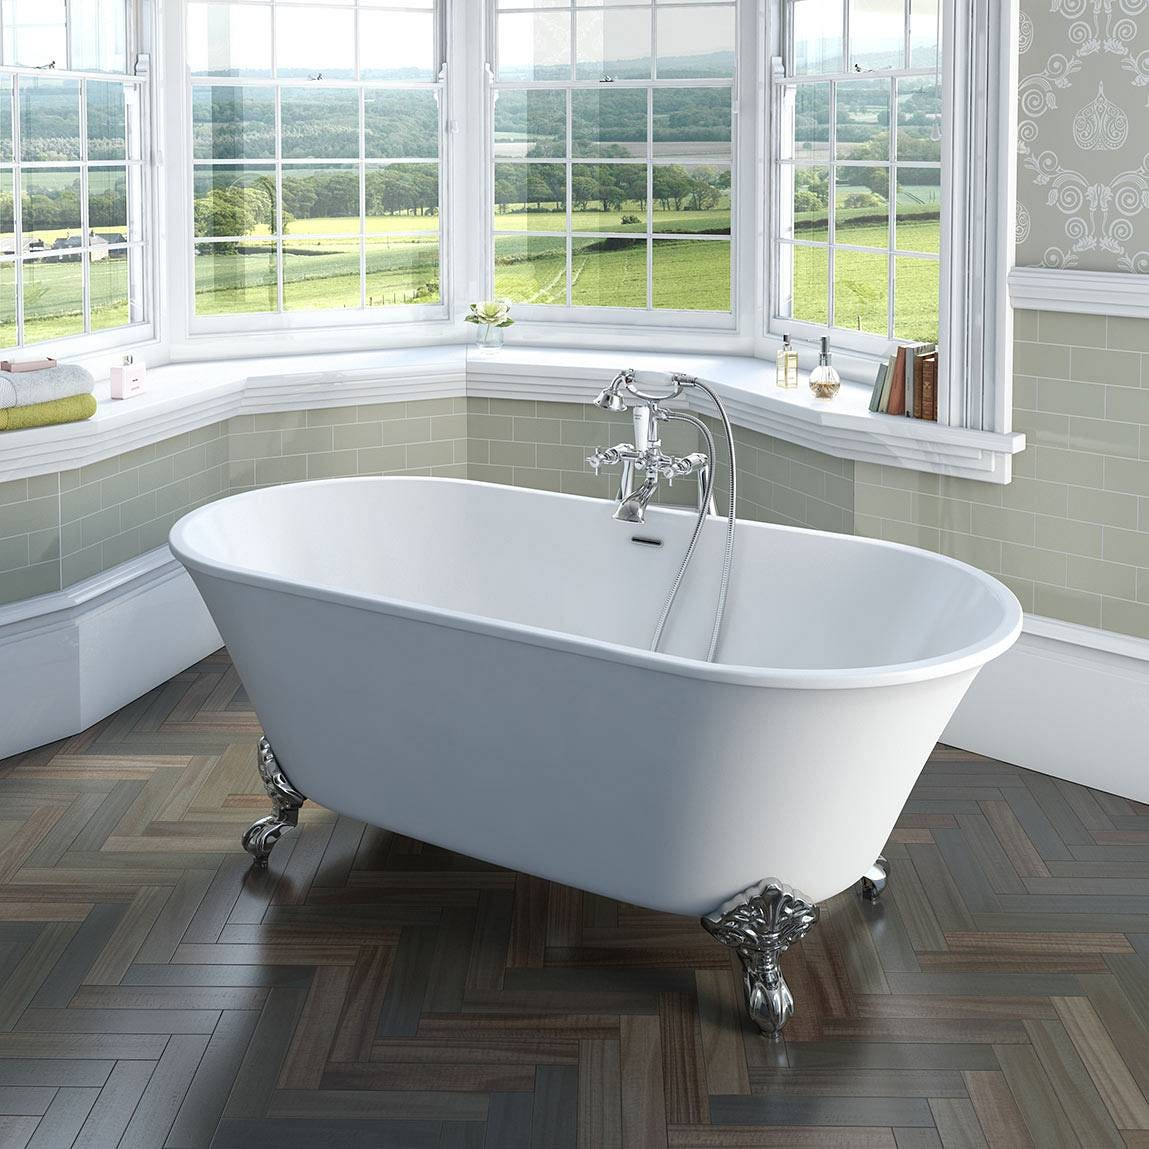 Camberley traditional freestanding bath with ball feet